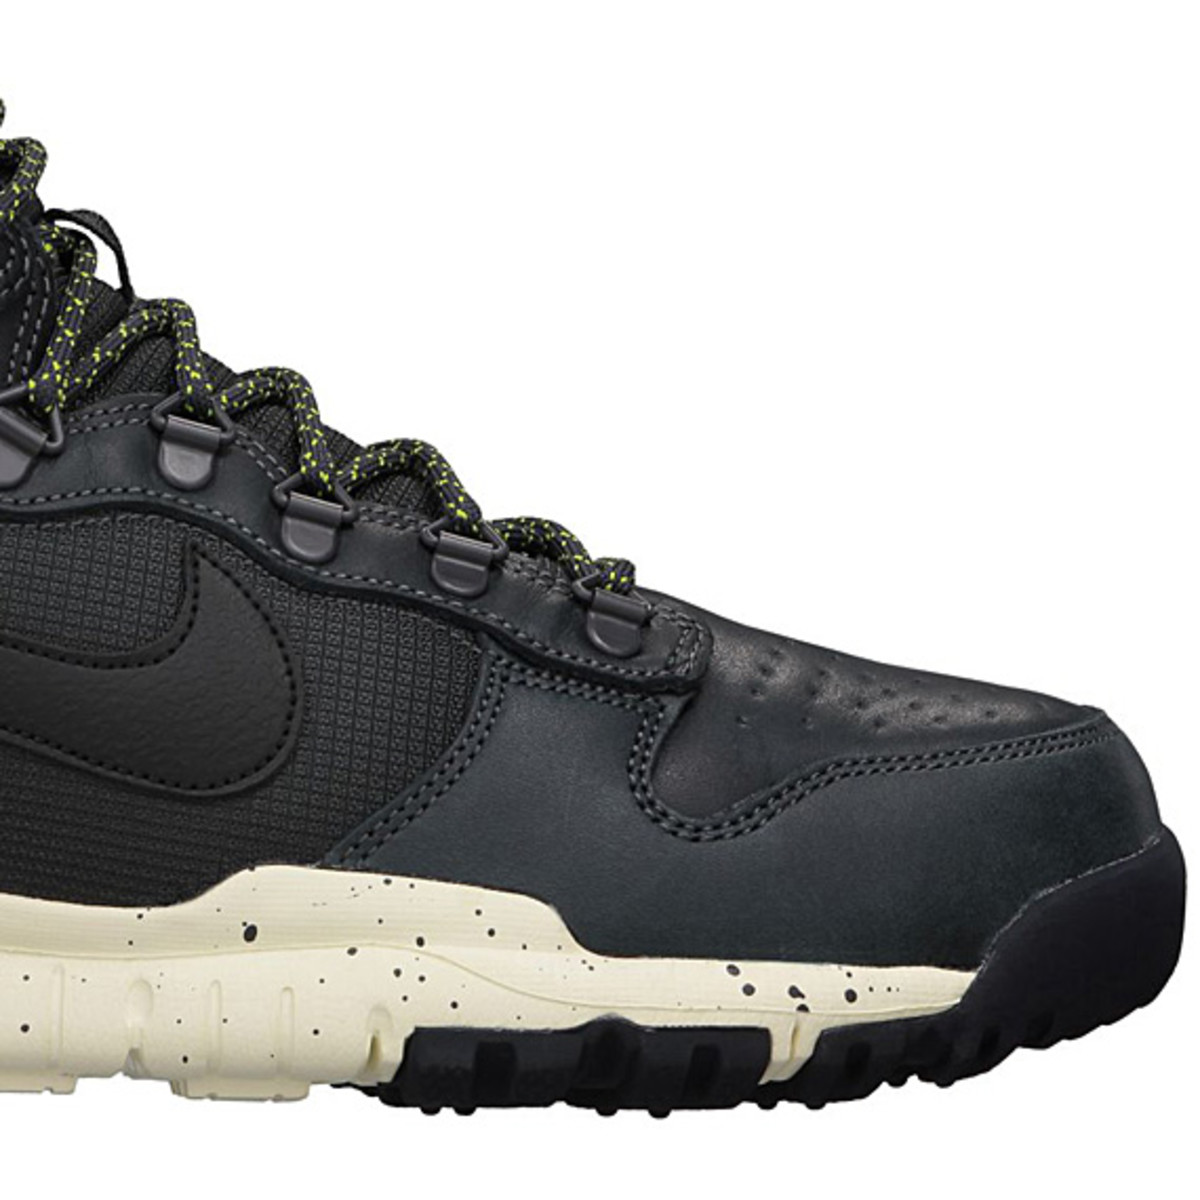 nike-dunk-hi-winter-anthracite-black-atomic green-cashmere-03